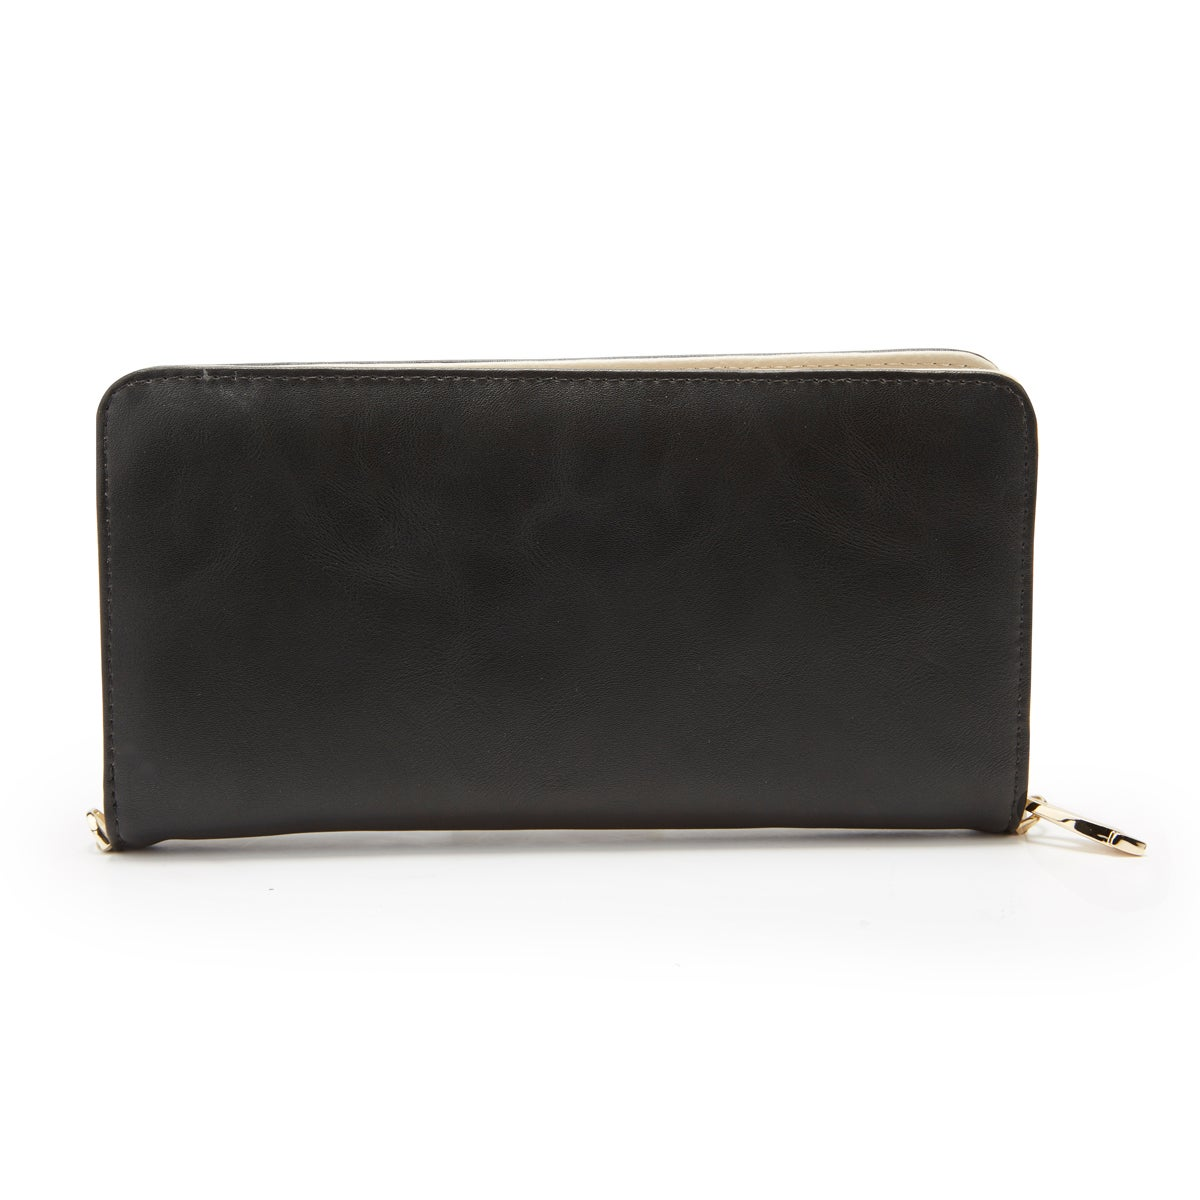 Lds black zip around convertible wallet